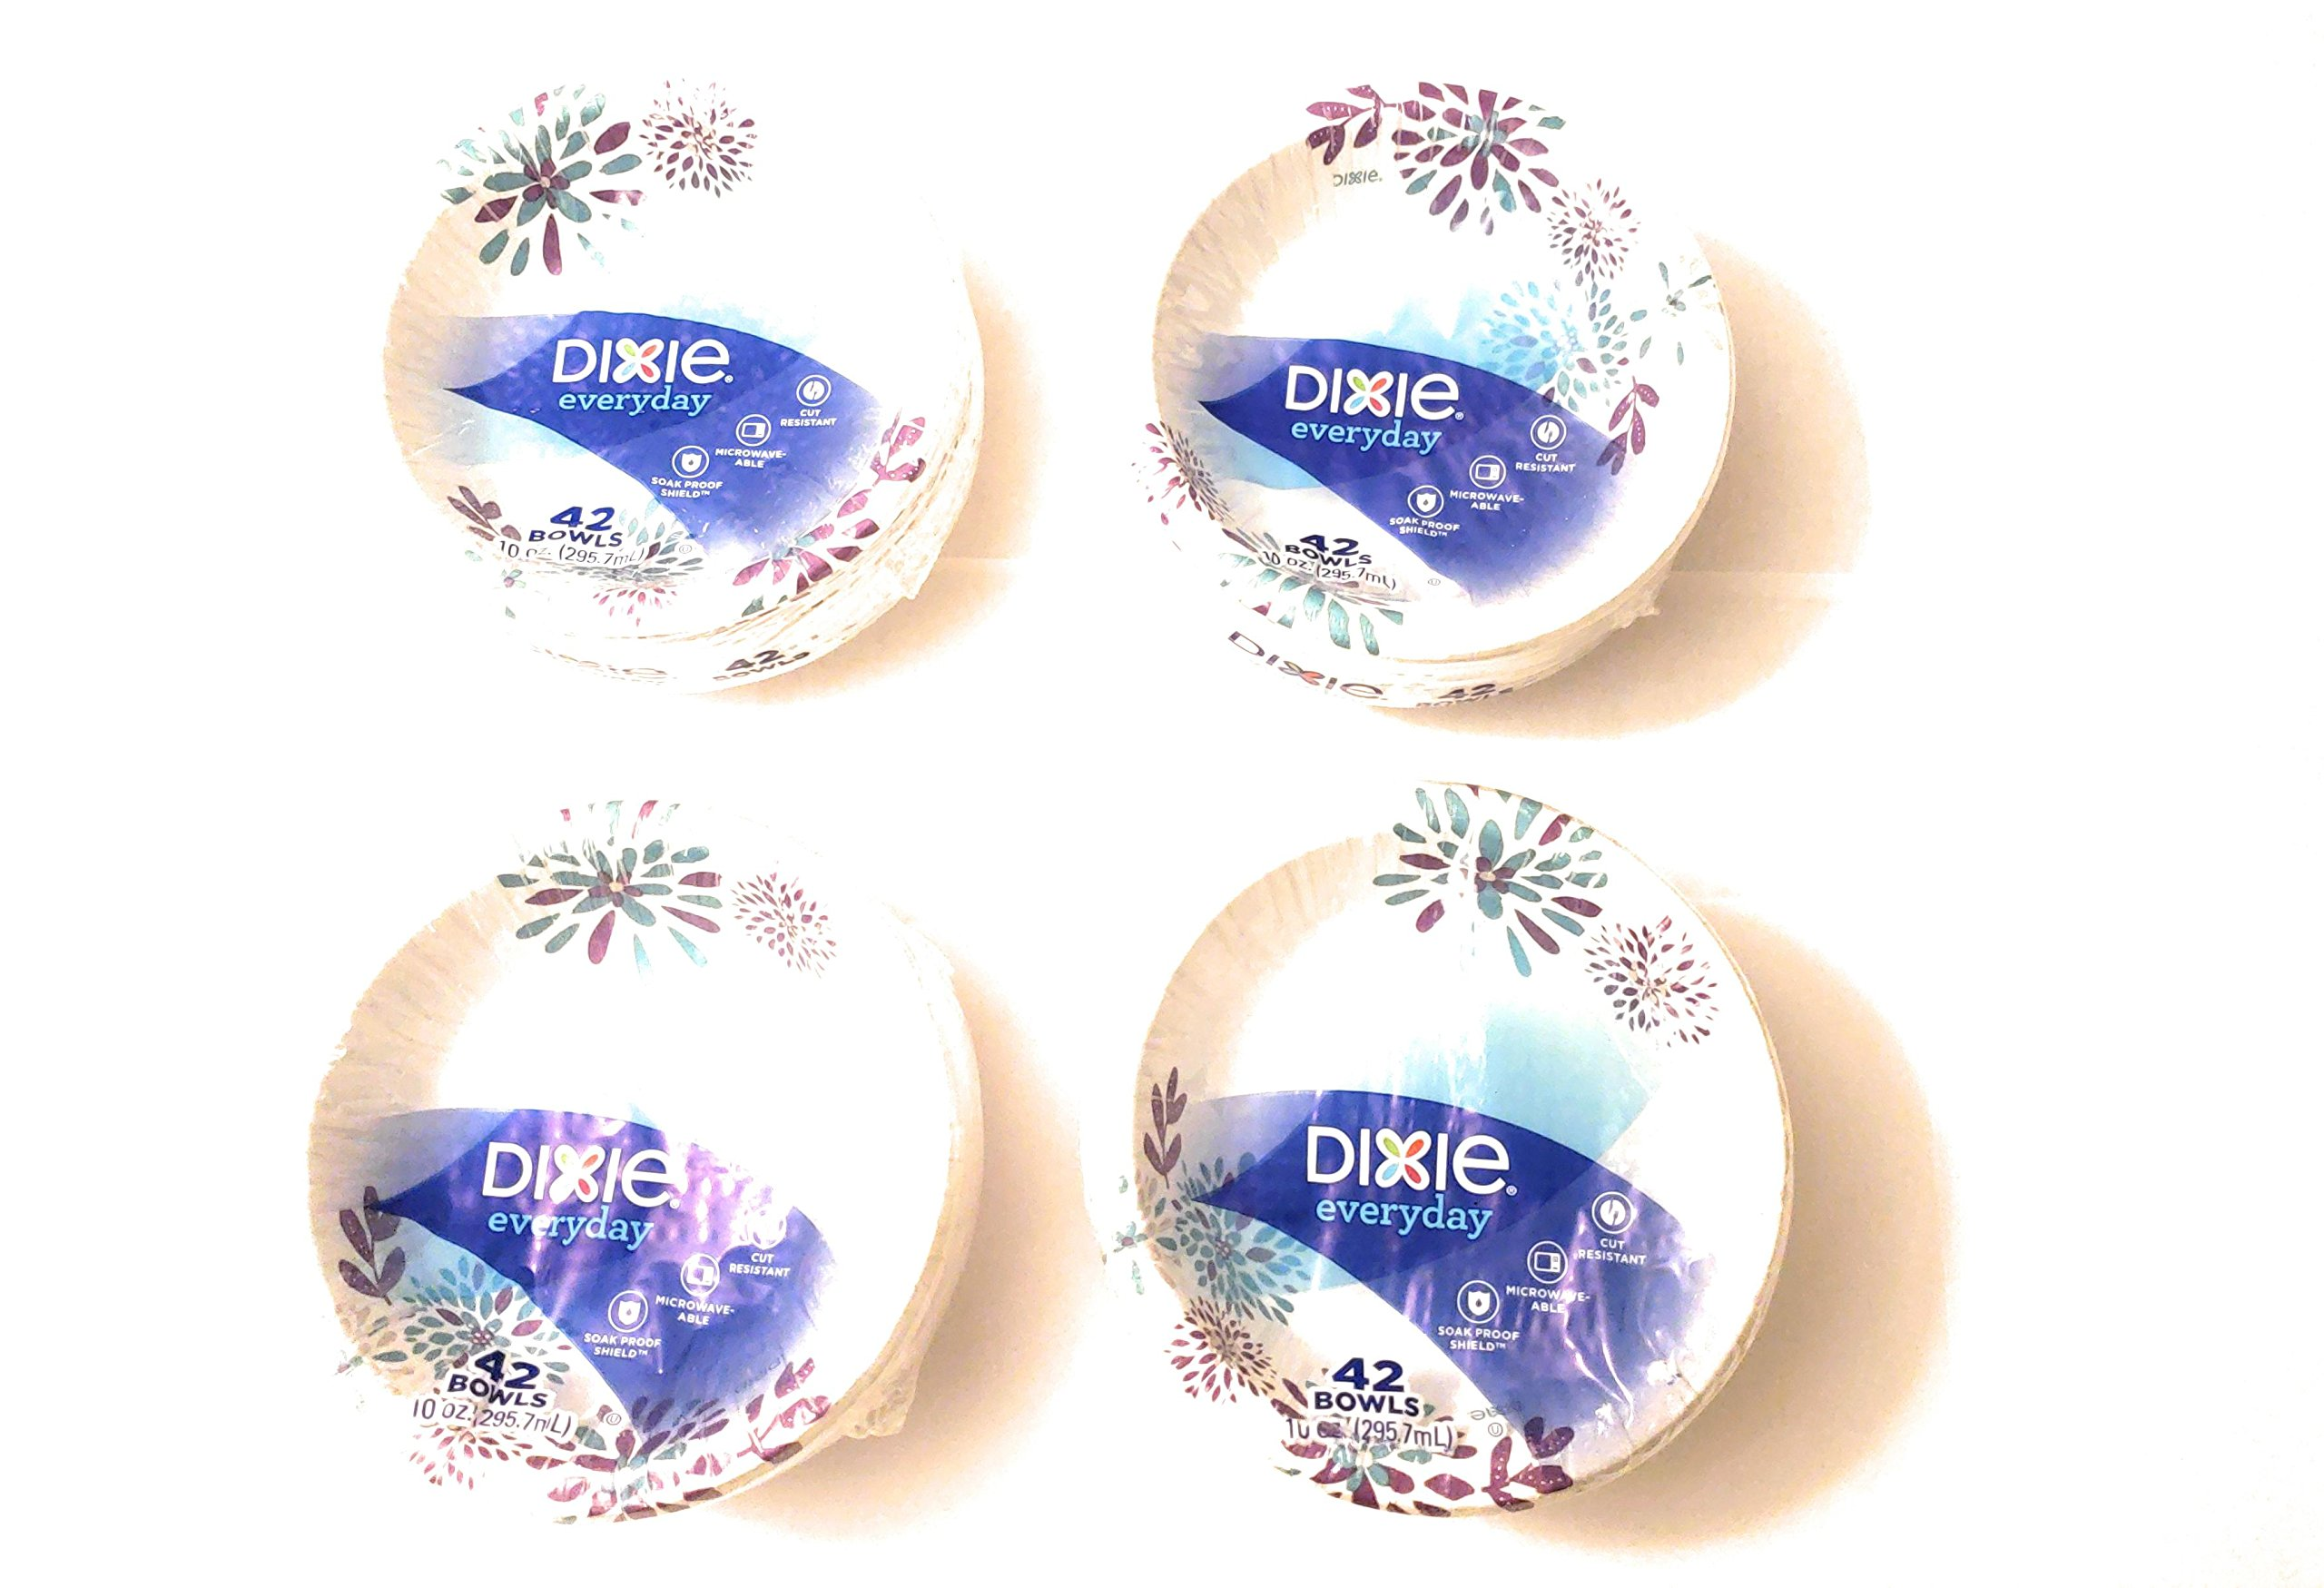 Dixie Everyday Disposable Paper Bowls, 10 oz, 168 Count, 4 packs of 42 bowls